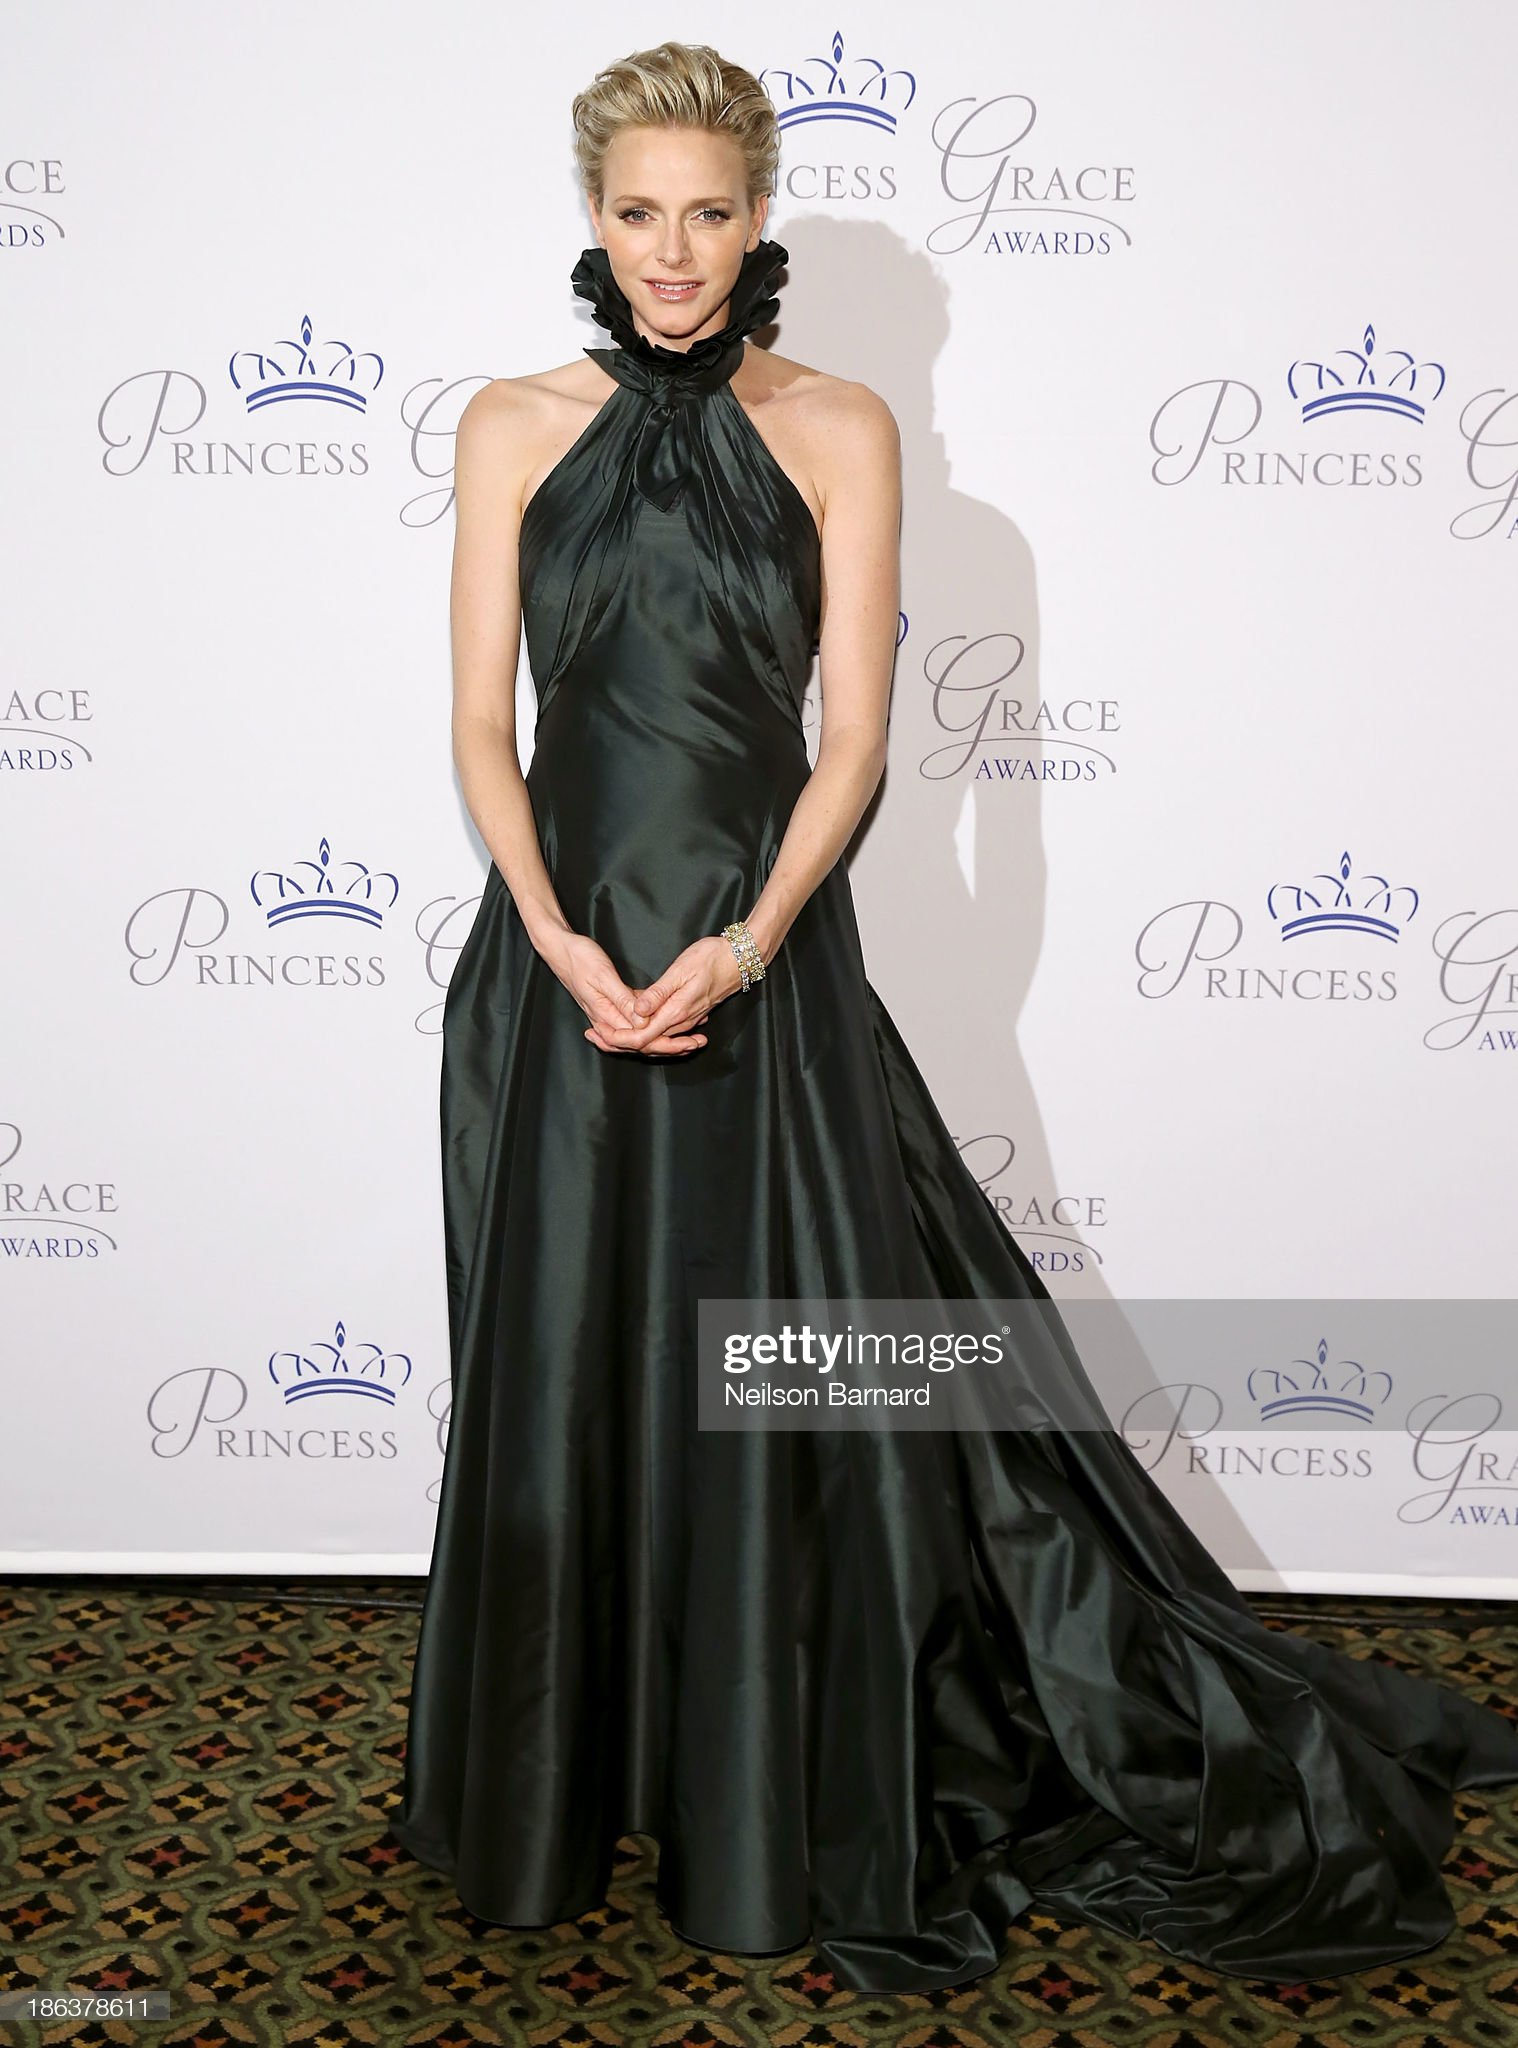 2013 Princess Grace Awards Gala - Inside Arrivals : News Photo